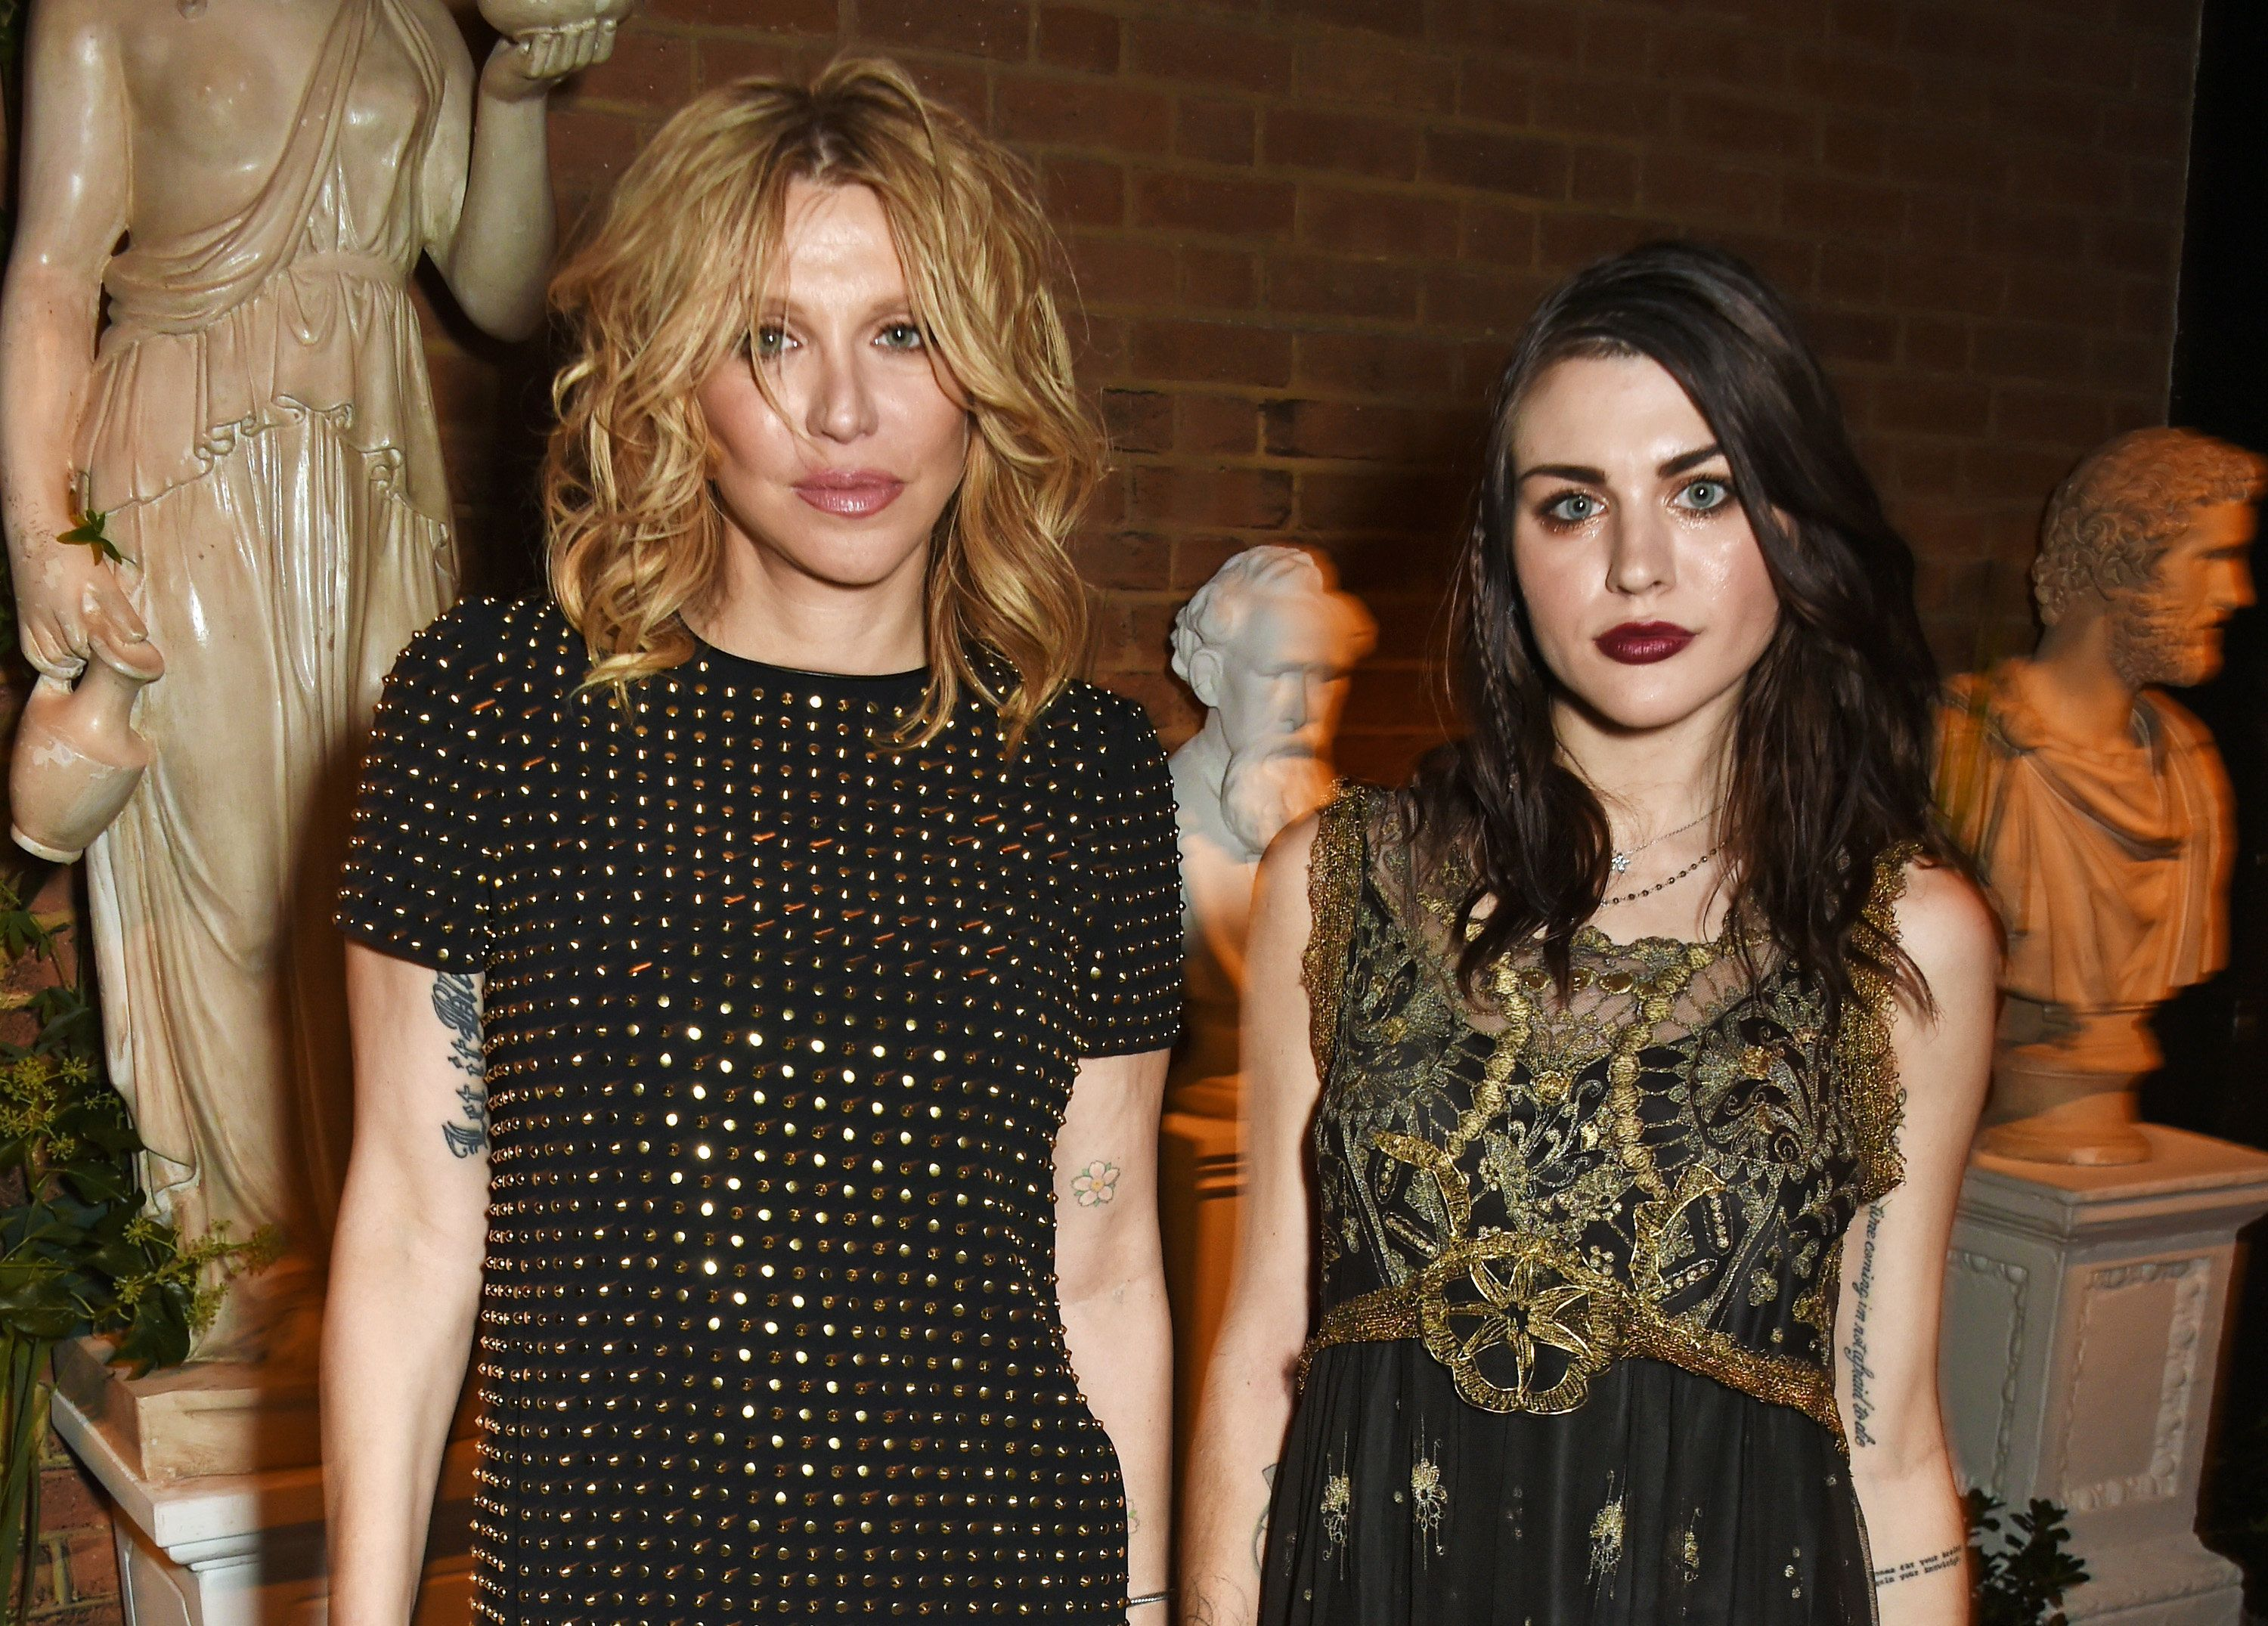 Courtney Love, left, with daughter Frances Bean Cobain in 2016.